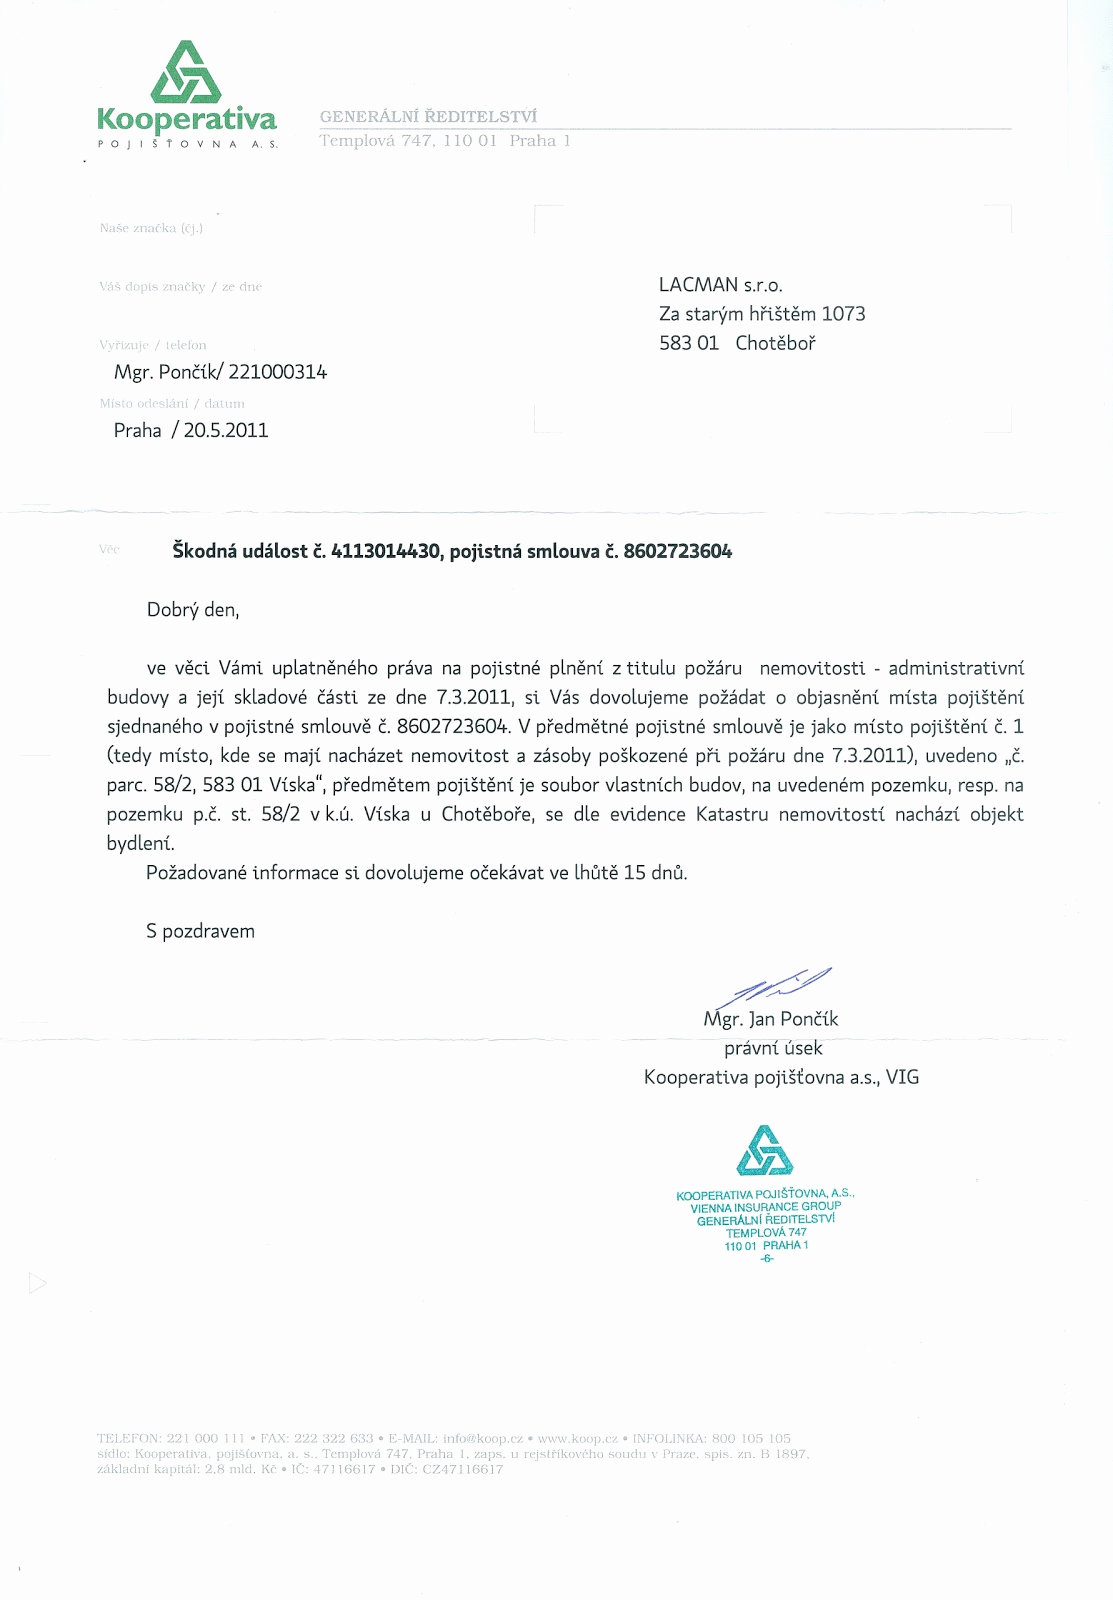 Demand Letter Car Accident Template - Demand Letter for Payment Inspirational Demand for Payment Template